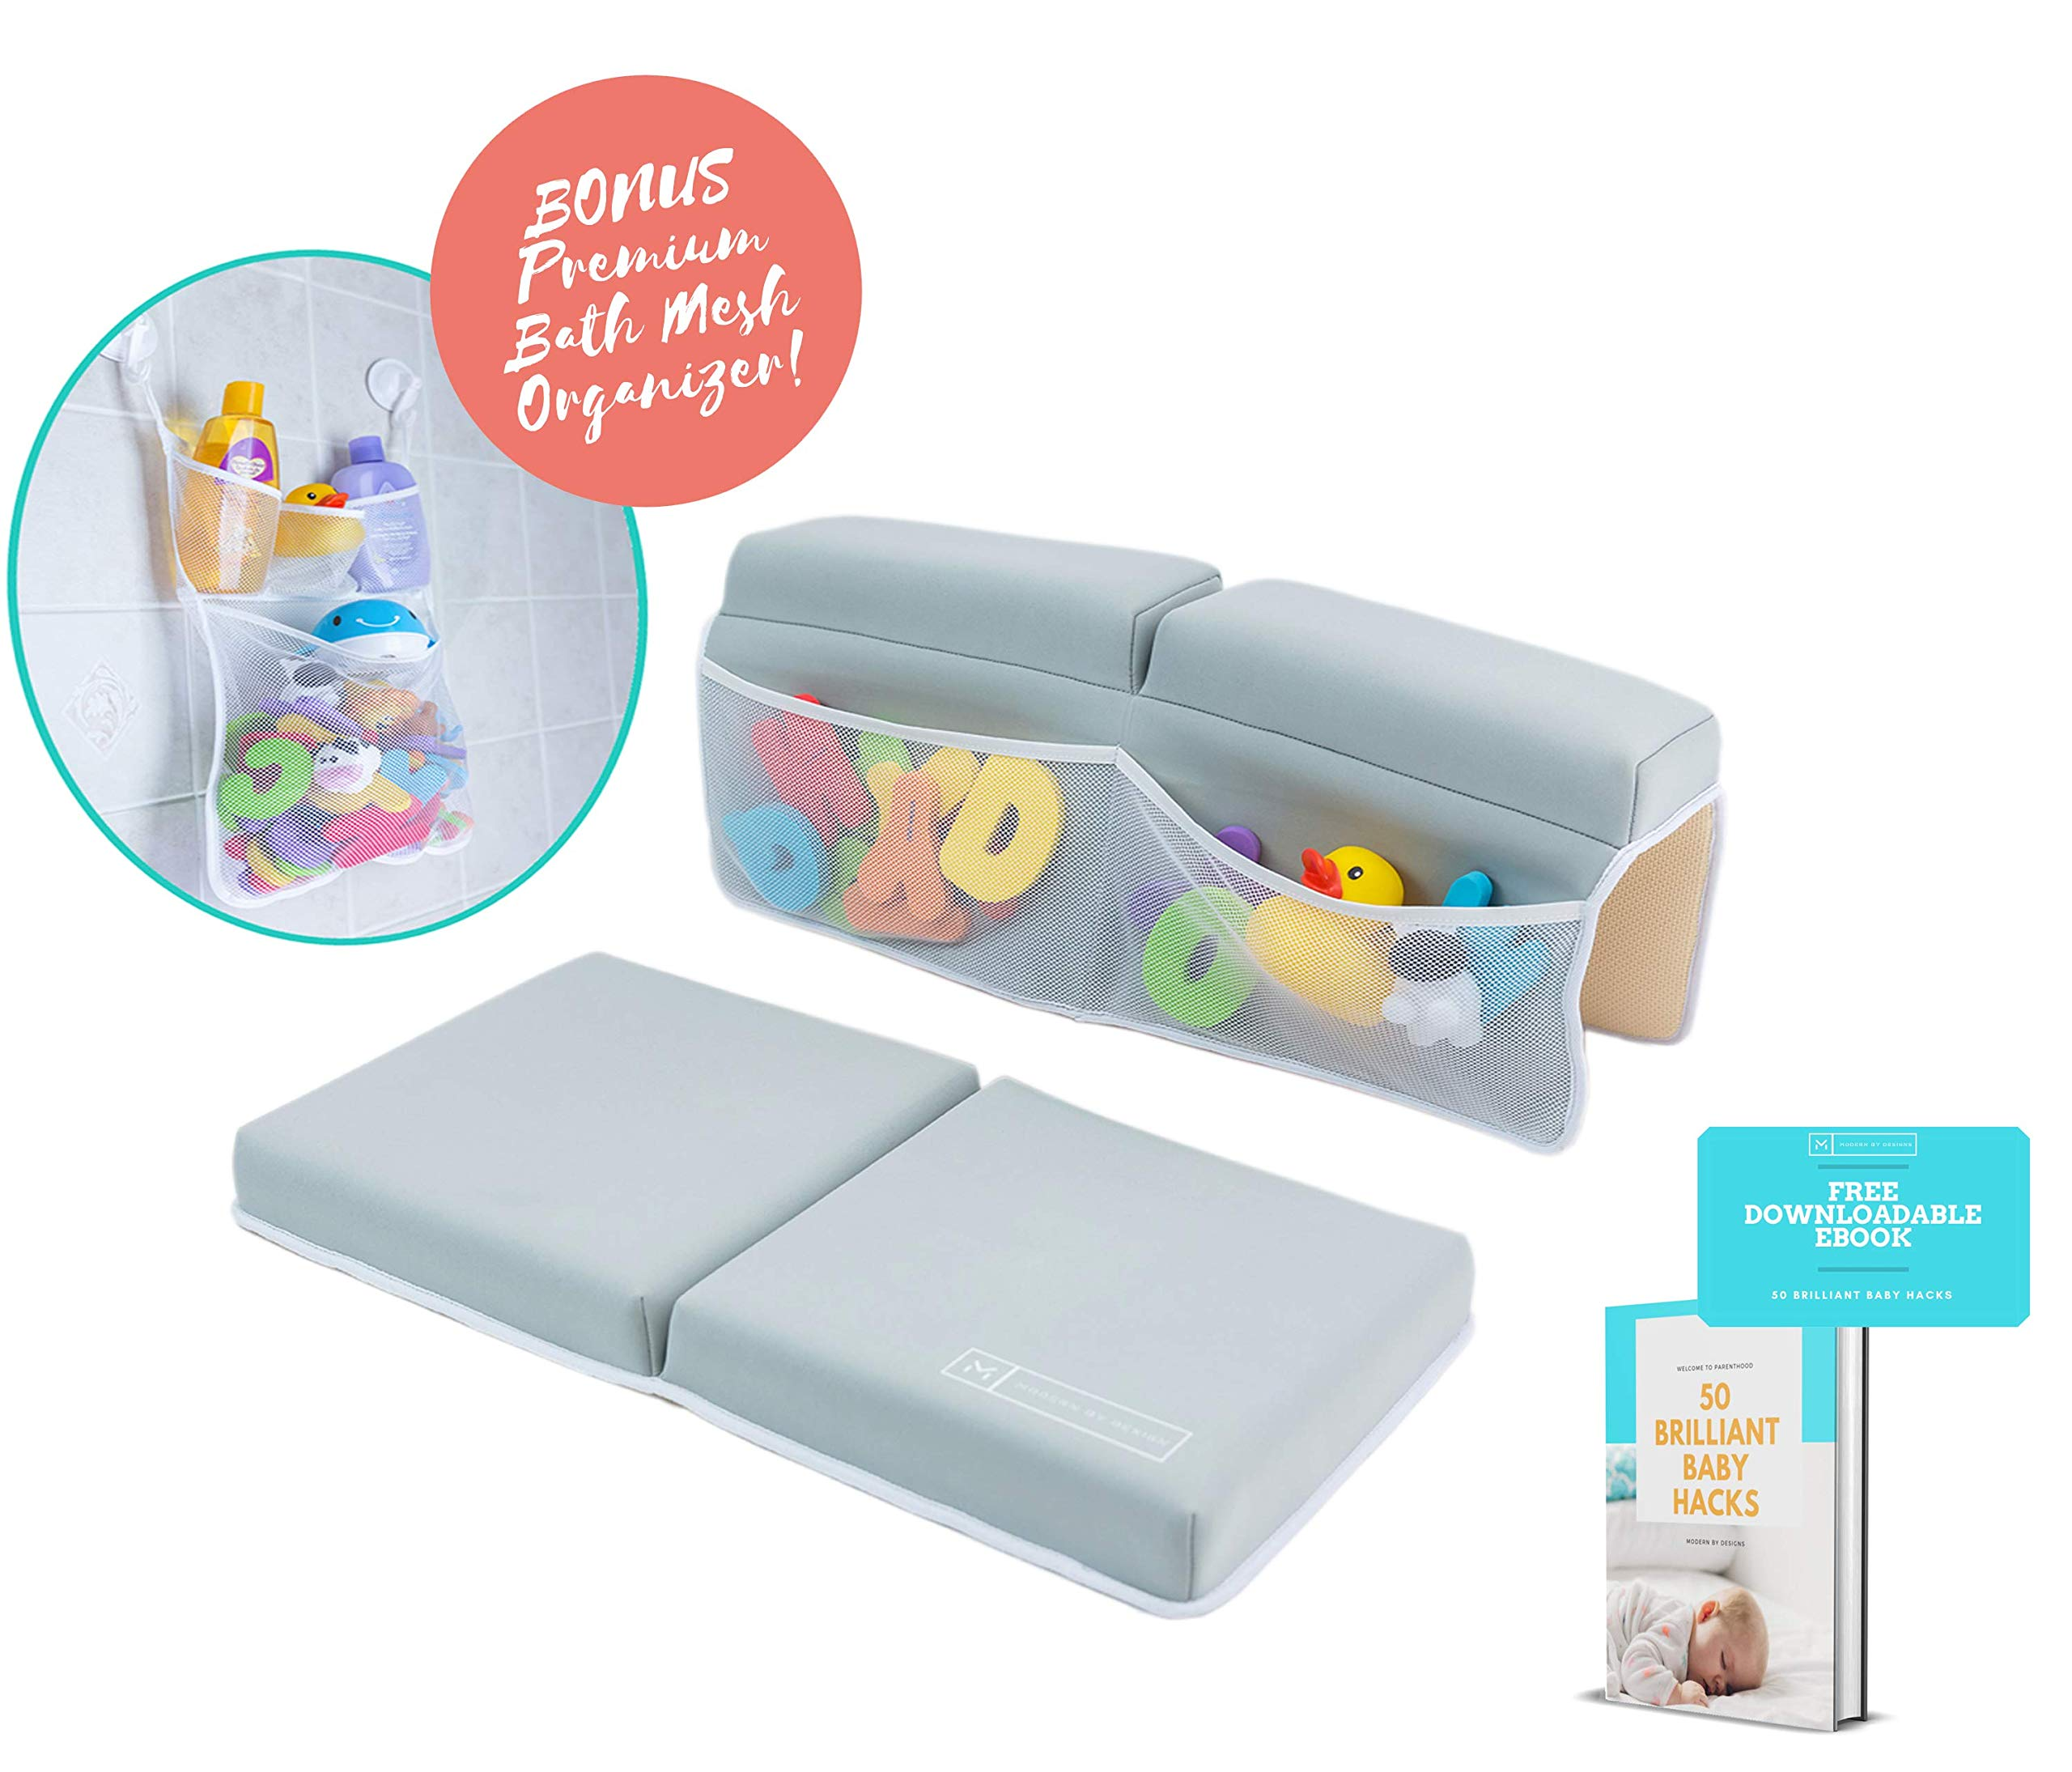 Bath Kneeler and Elbow Rest Set |Thick Cushioned, Quick Dry Non-Slip Knee and Elbow Support. Extra Large Pockets with Strong Suction Cups. Bonus Bath Toy mesh Organizer with 2 Heavy Duty Suction Cups by Modern by Designs